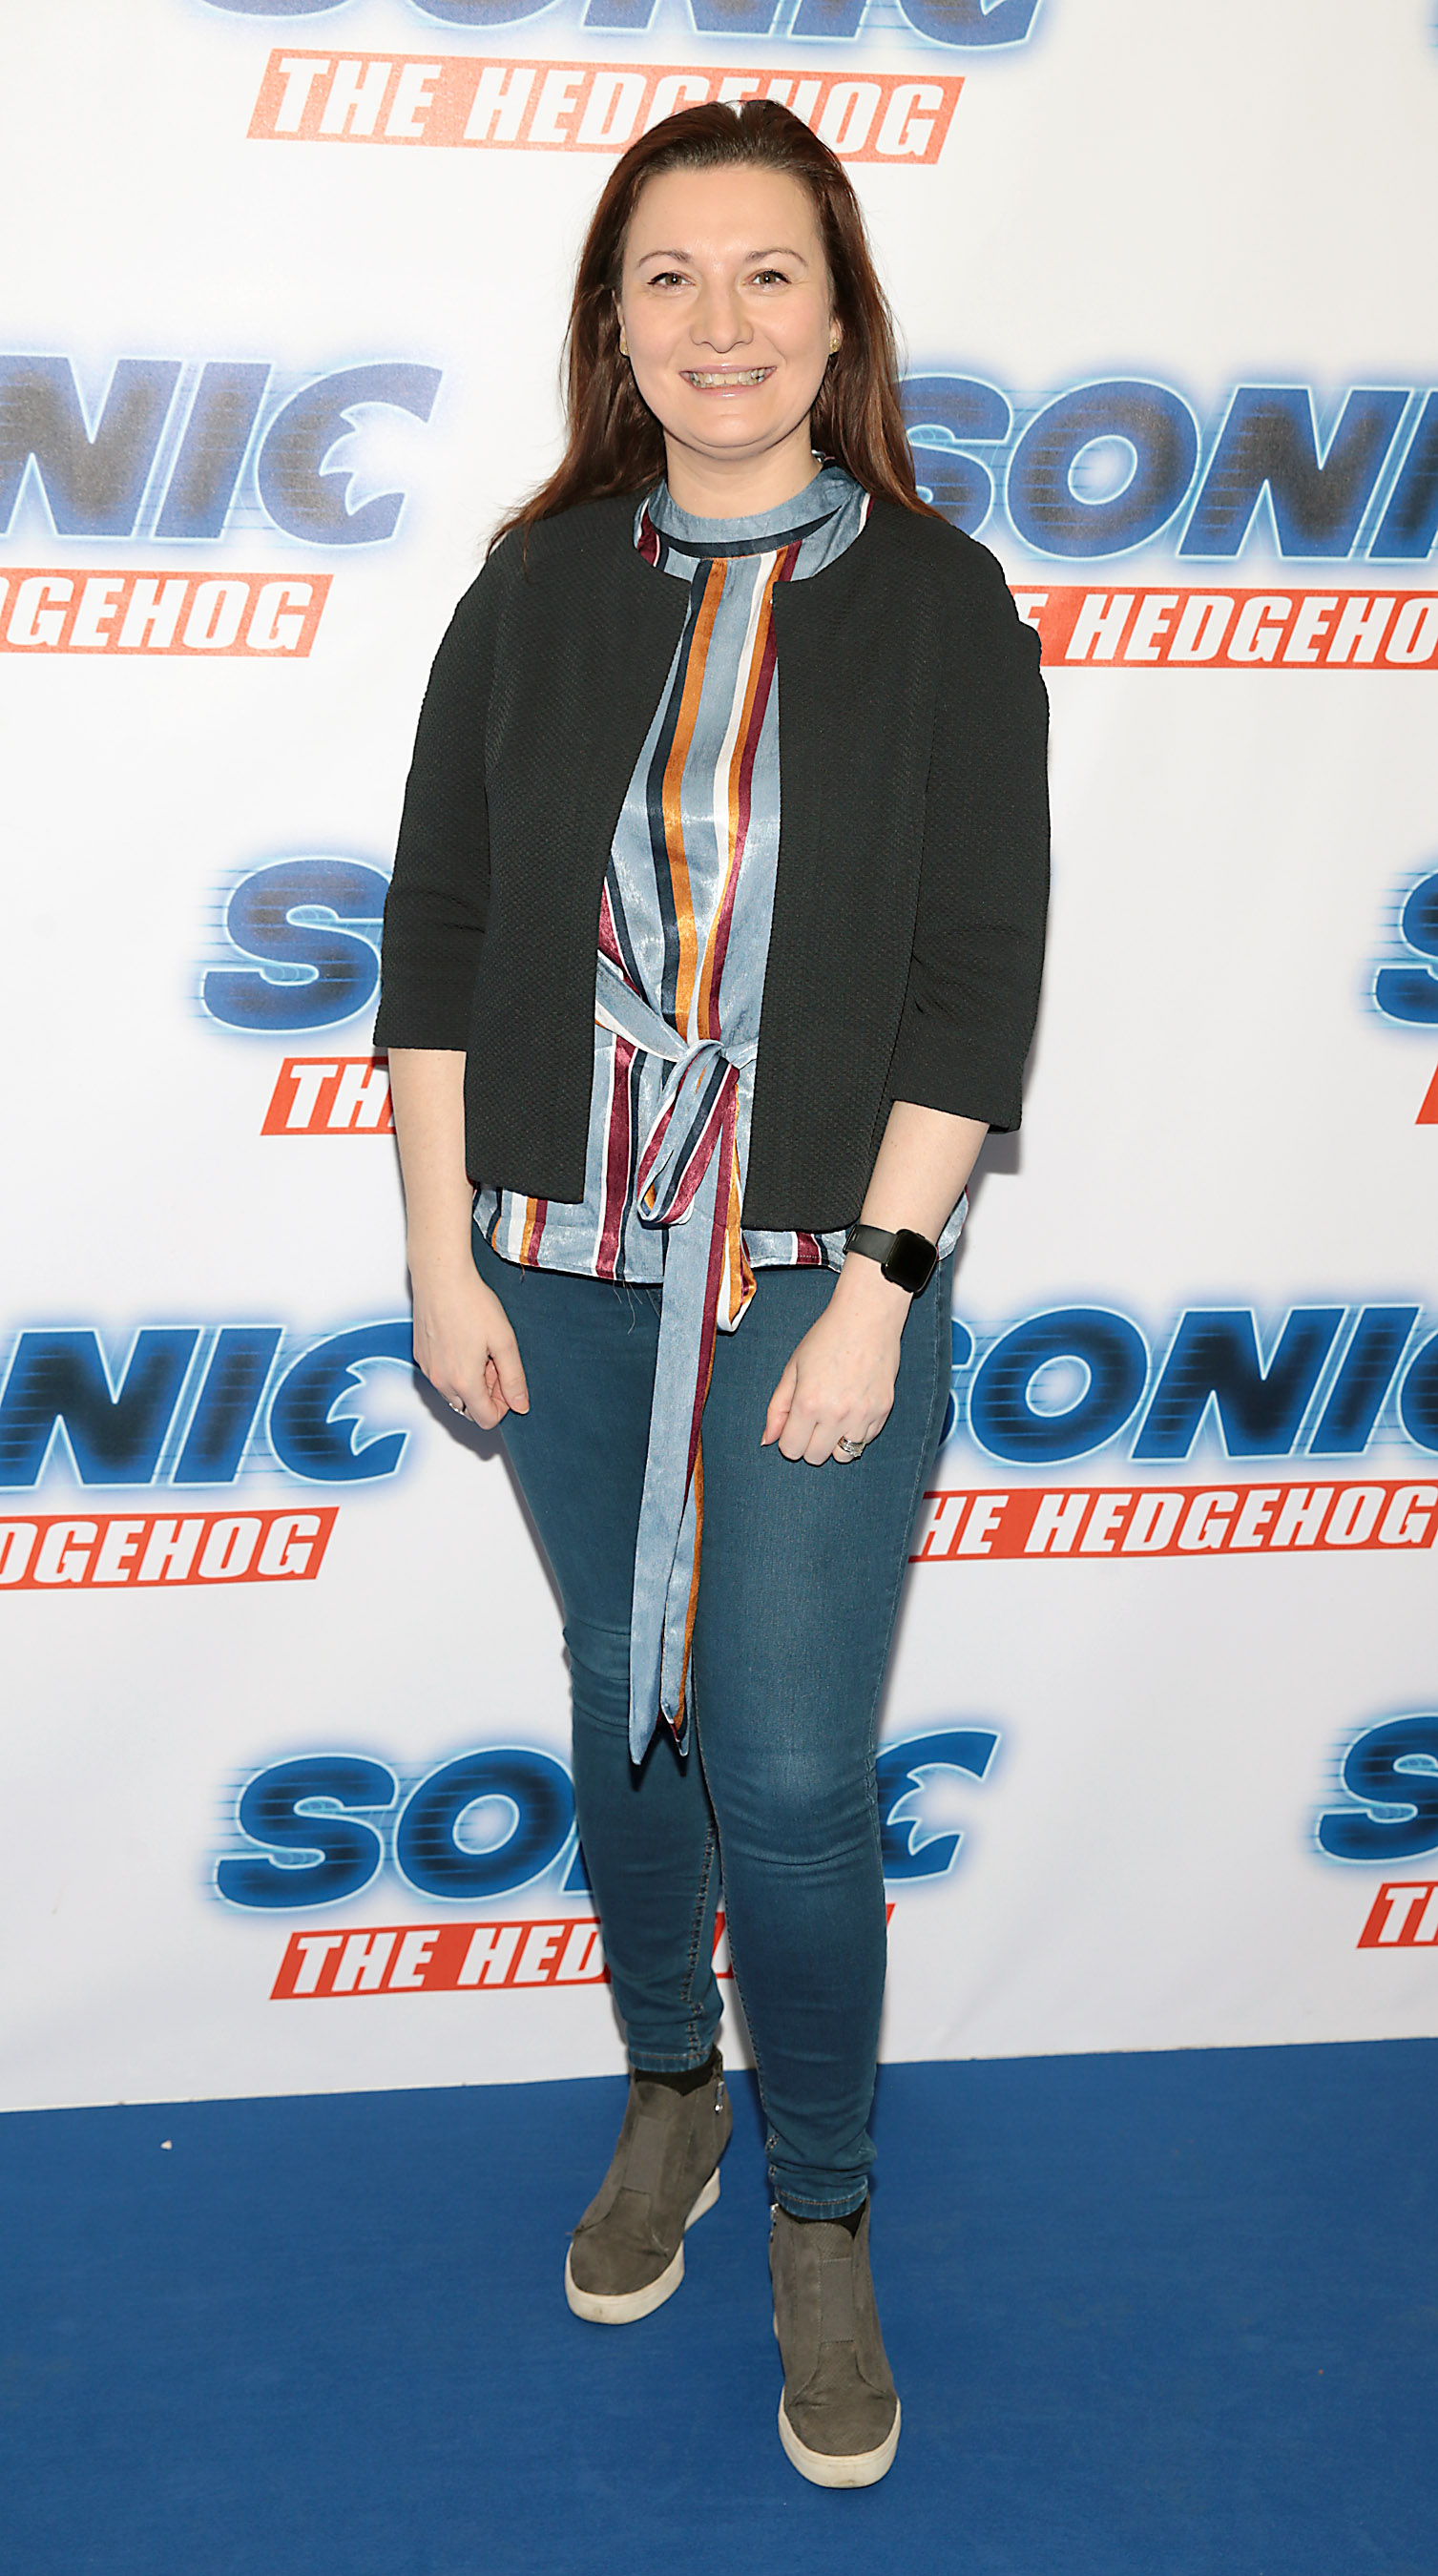 Michelle Cantwell at the special preview screening of Sonic the Hedgehog Movie at the Odeon Cinema in Point Square, Dublin. Pic: Brian McEvoy